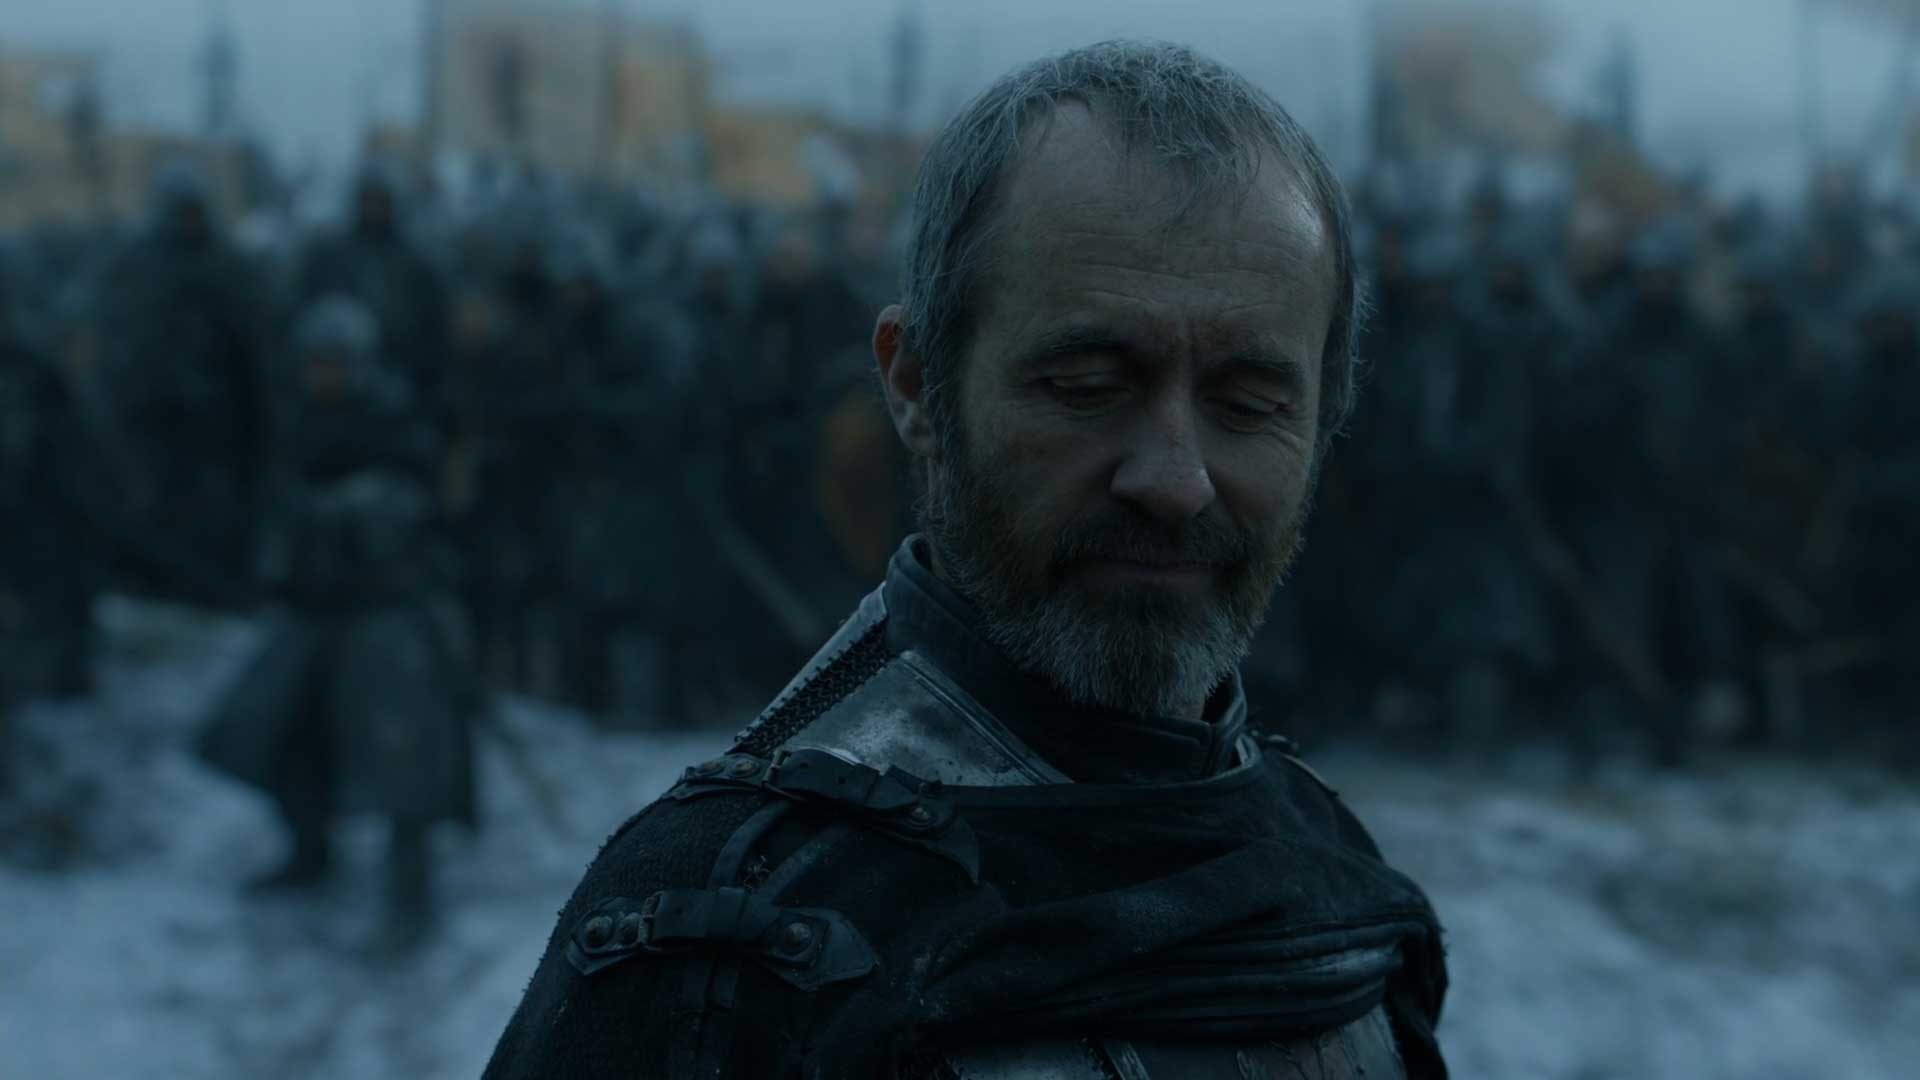 Game of Thrones Season 5 Stannis Baratheon Mother's Mercy